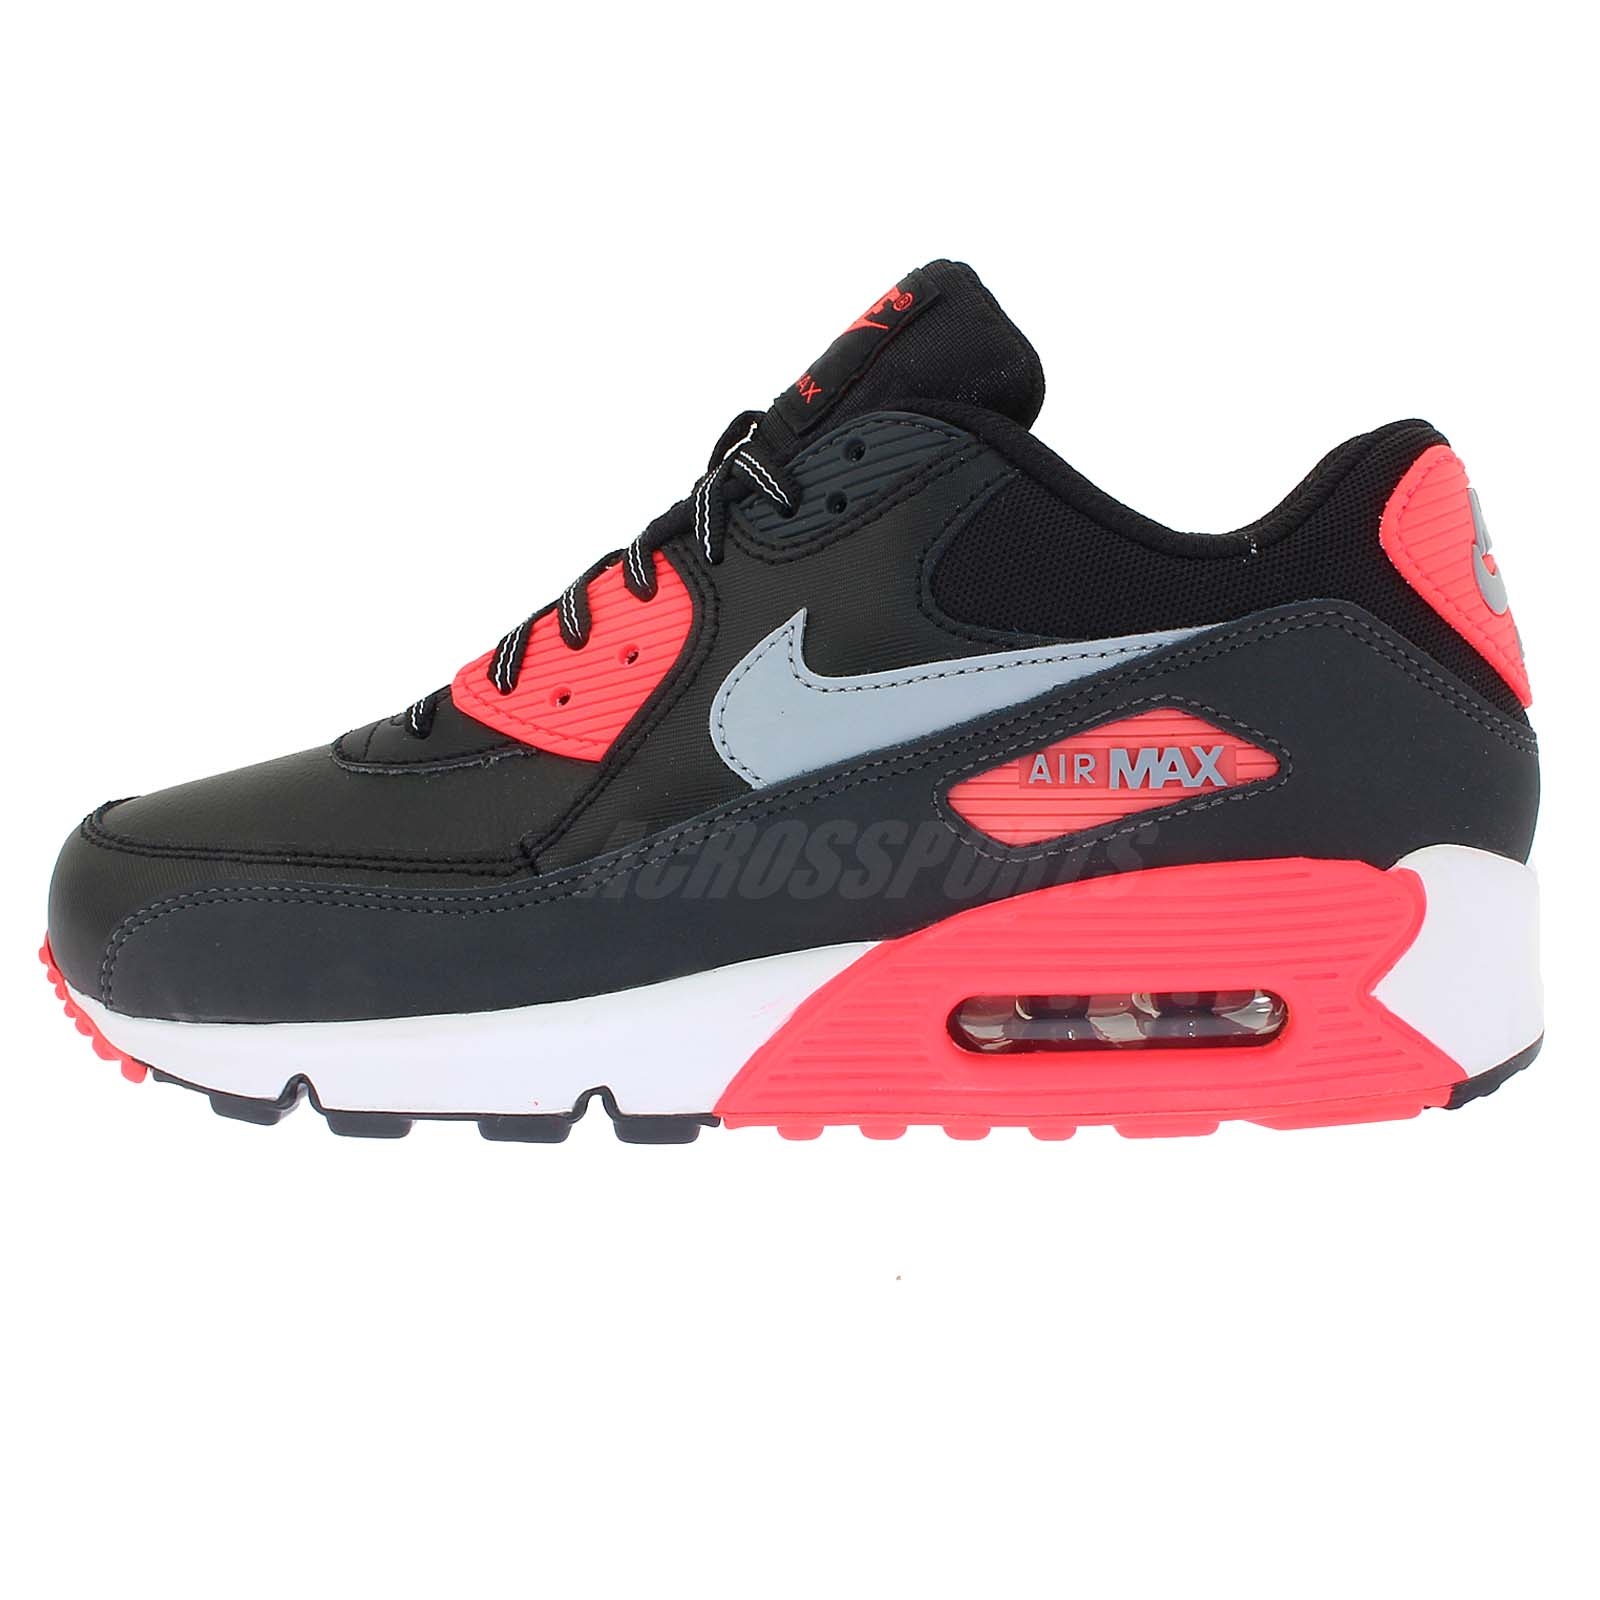 nike air max 90 gs 2013 boys girls youth womens nsw. Black Bedroom Furniture Sets. Home Design Ideas